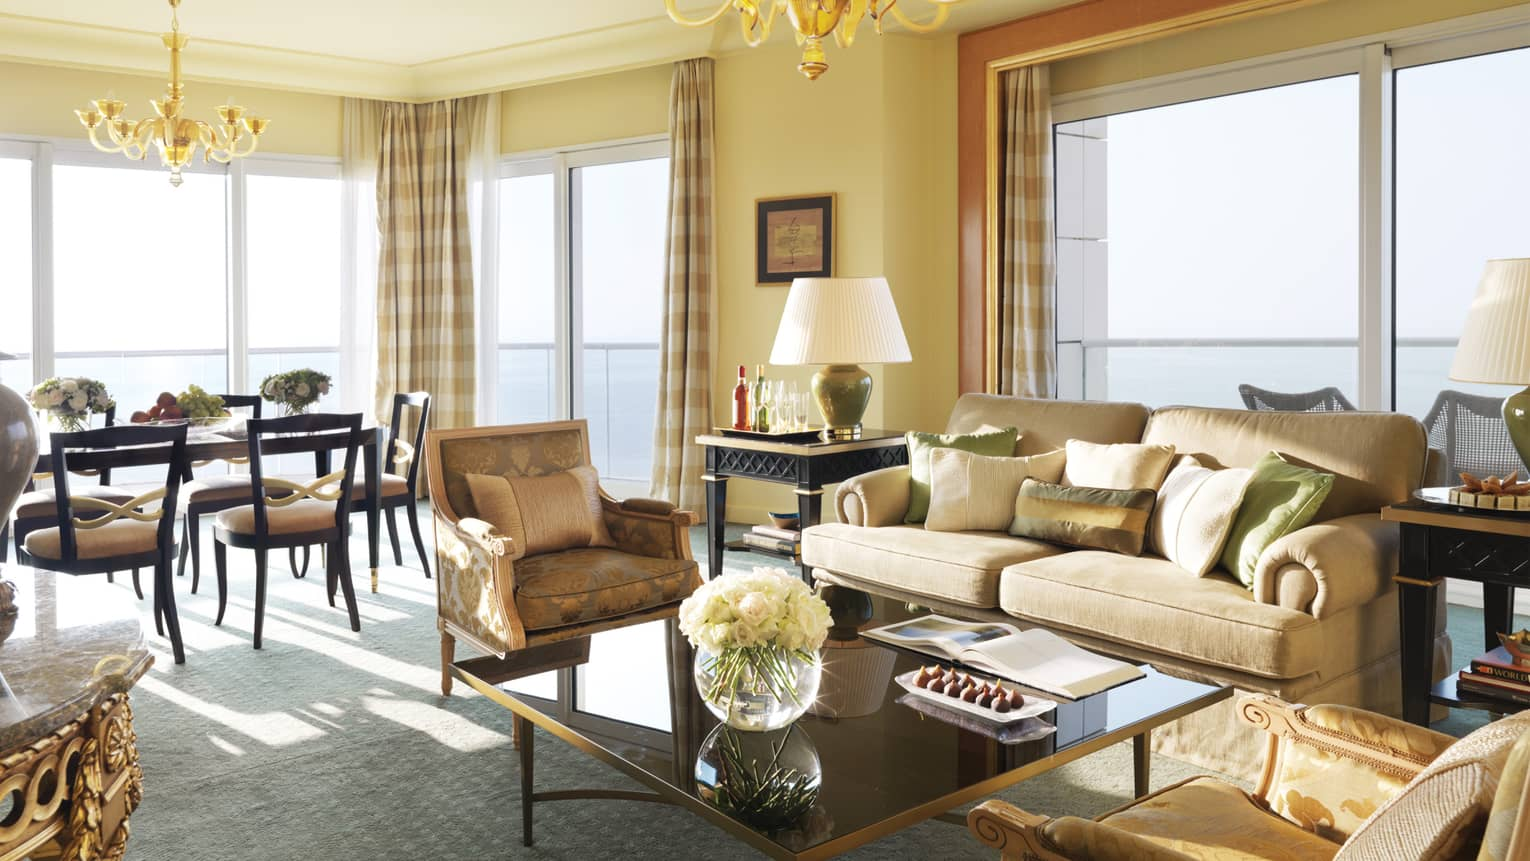 Premier Suite living room, beige sofa with green-and-gold pillows and elegant accent chairs, dining room in background